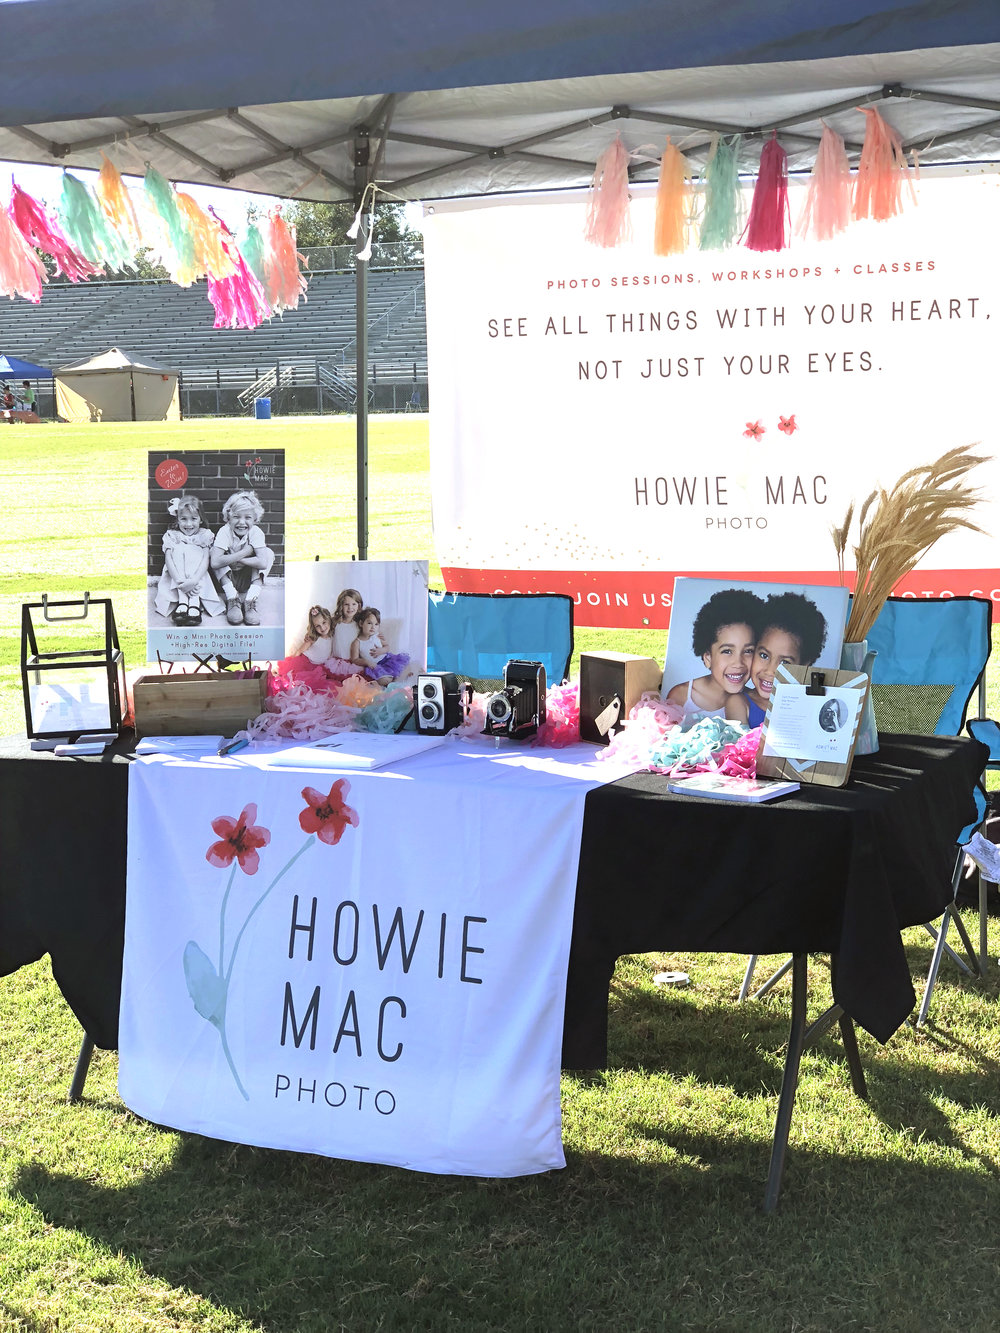 - Community is at the heart of what we do, so naturally being a part of the Bloomingdale Fall Festival was super fun for our Howie Mac family! We enjoyed talking with so many fun families and seeing the creative costumes this year!